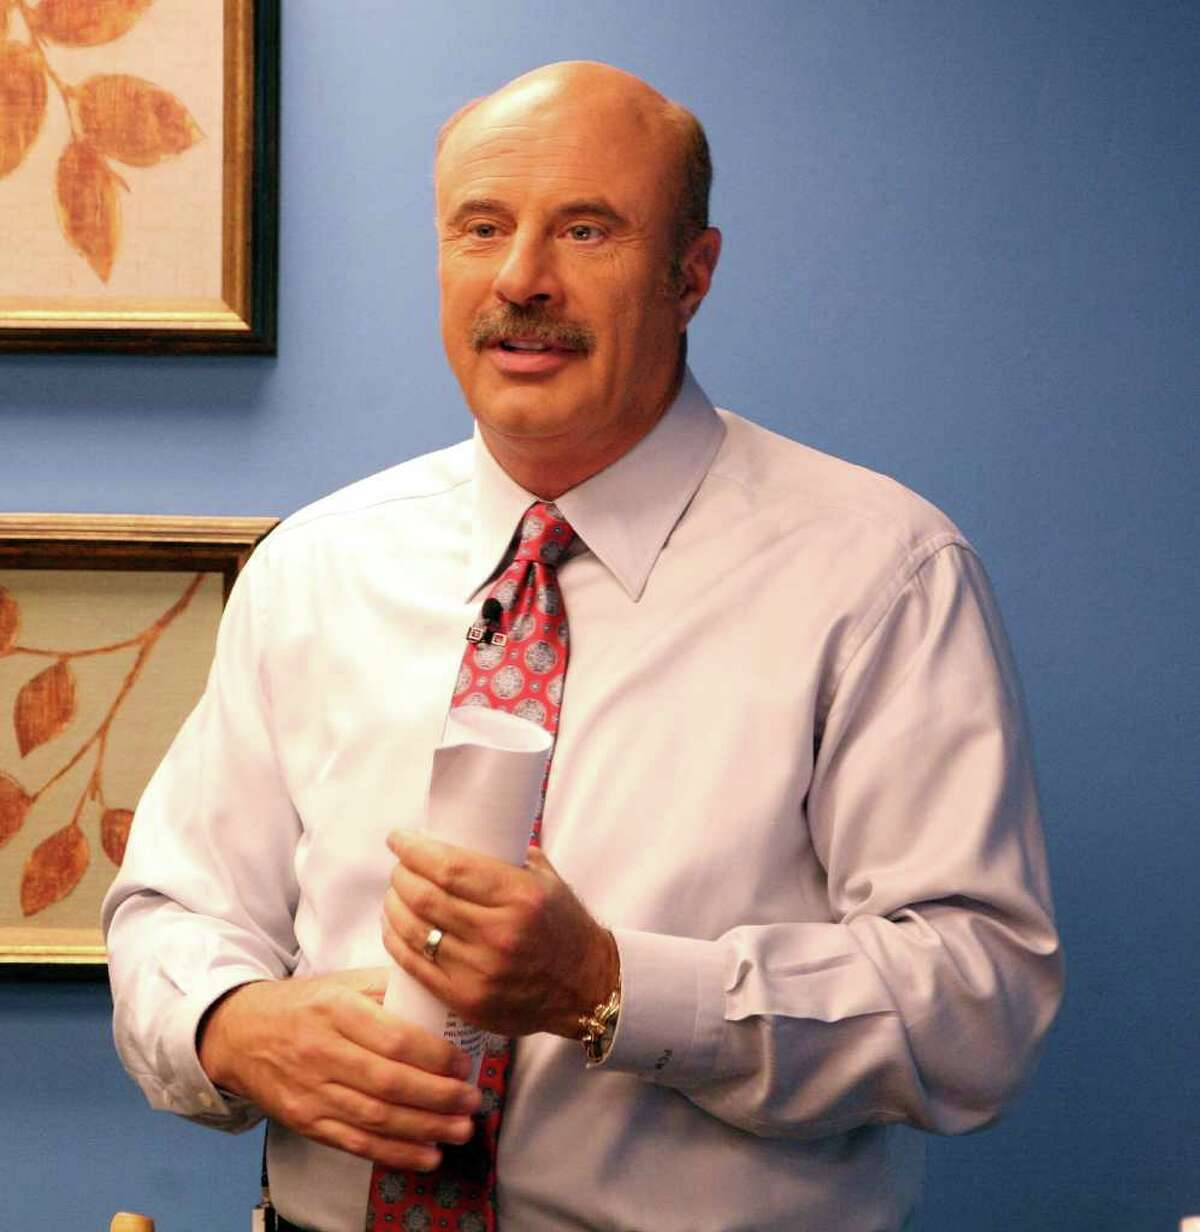 15. Dr. Phil McGraw Age: 66 Earnings: $79 million